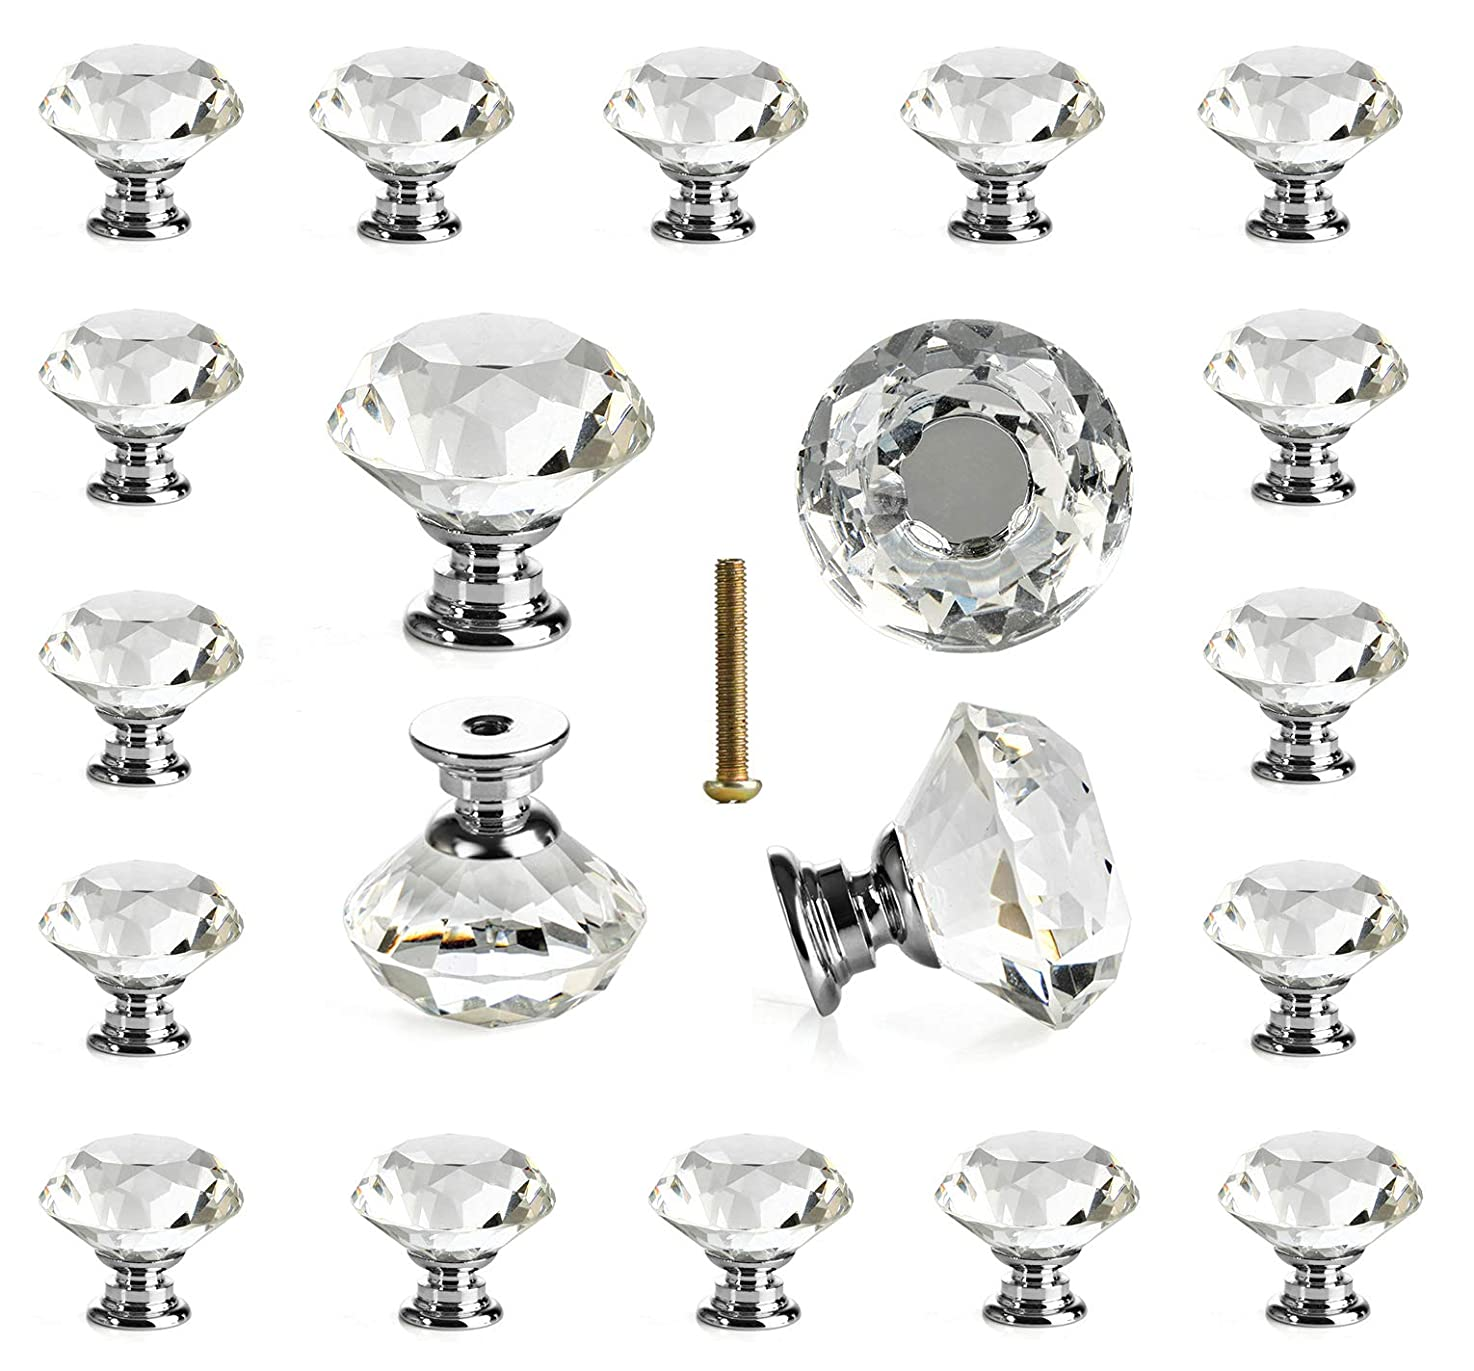 25 pcs Glass Cabinet Knobs Crystal Drawer Pulls Clear 30 mm Diamond for Kitchen, Bathroom Cabinet, Dresser and Cupboard by DeElf rfddwxcopffpd2